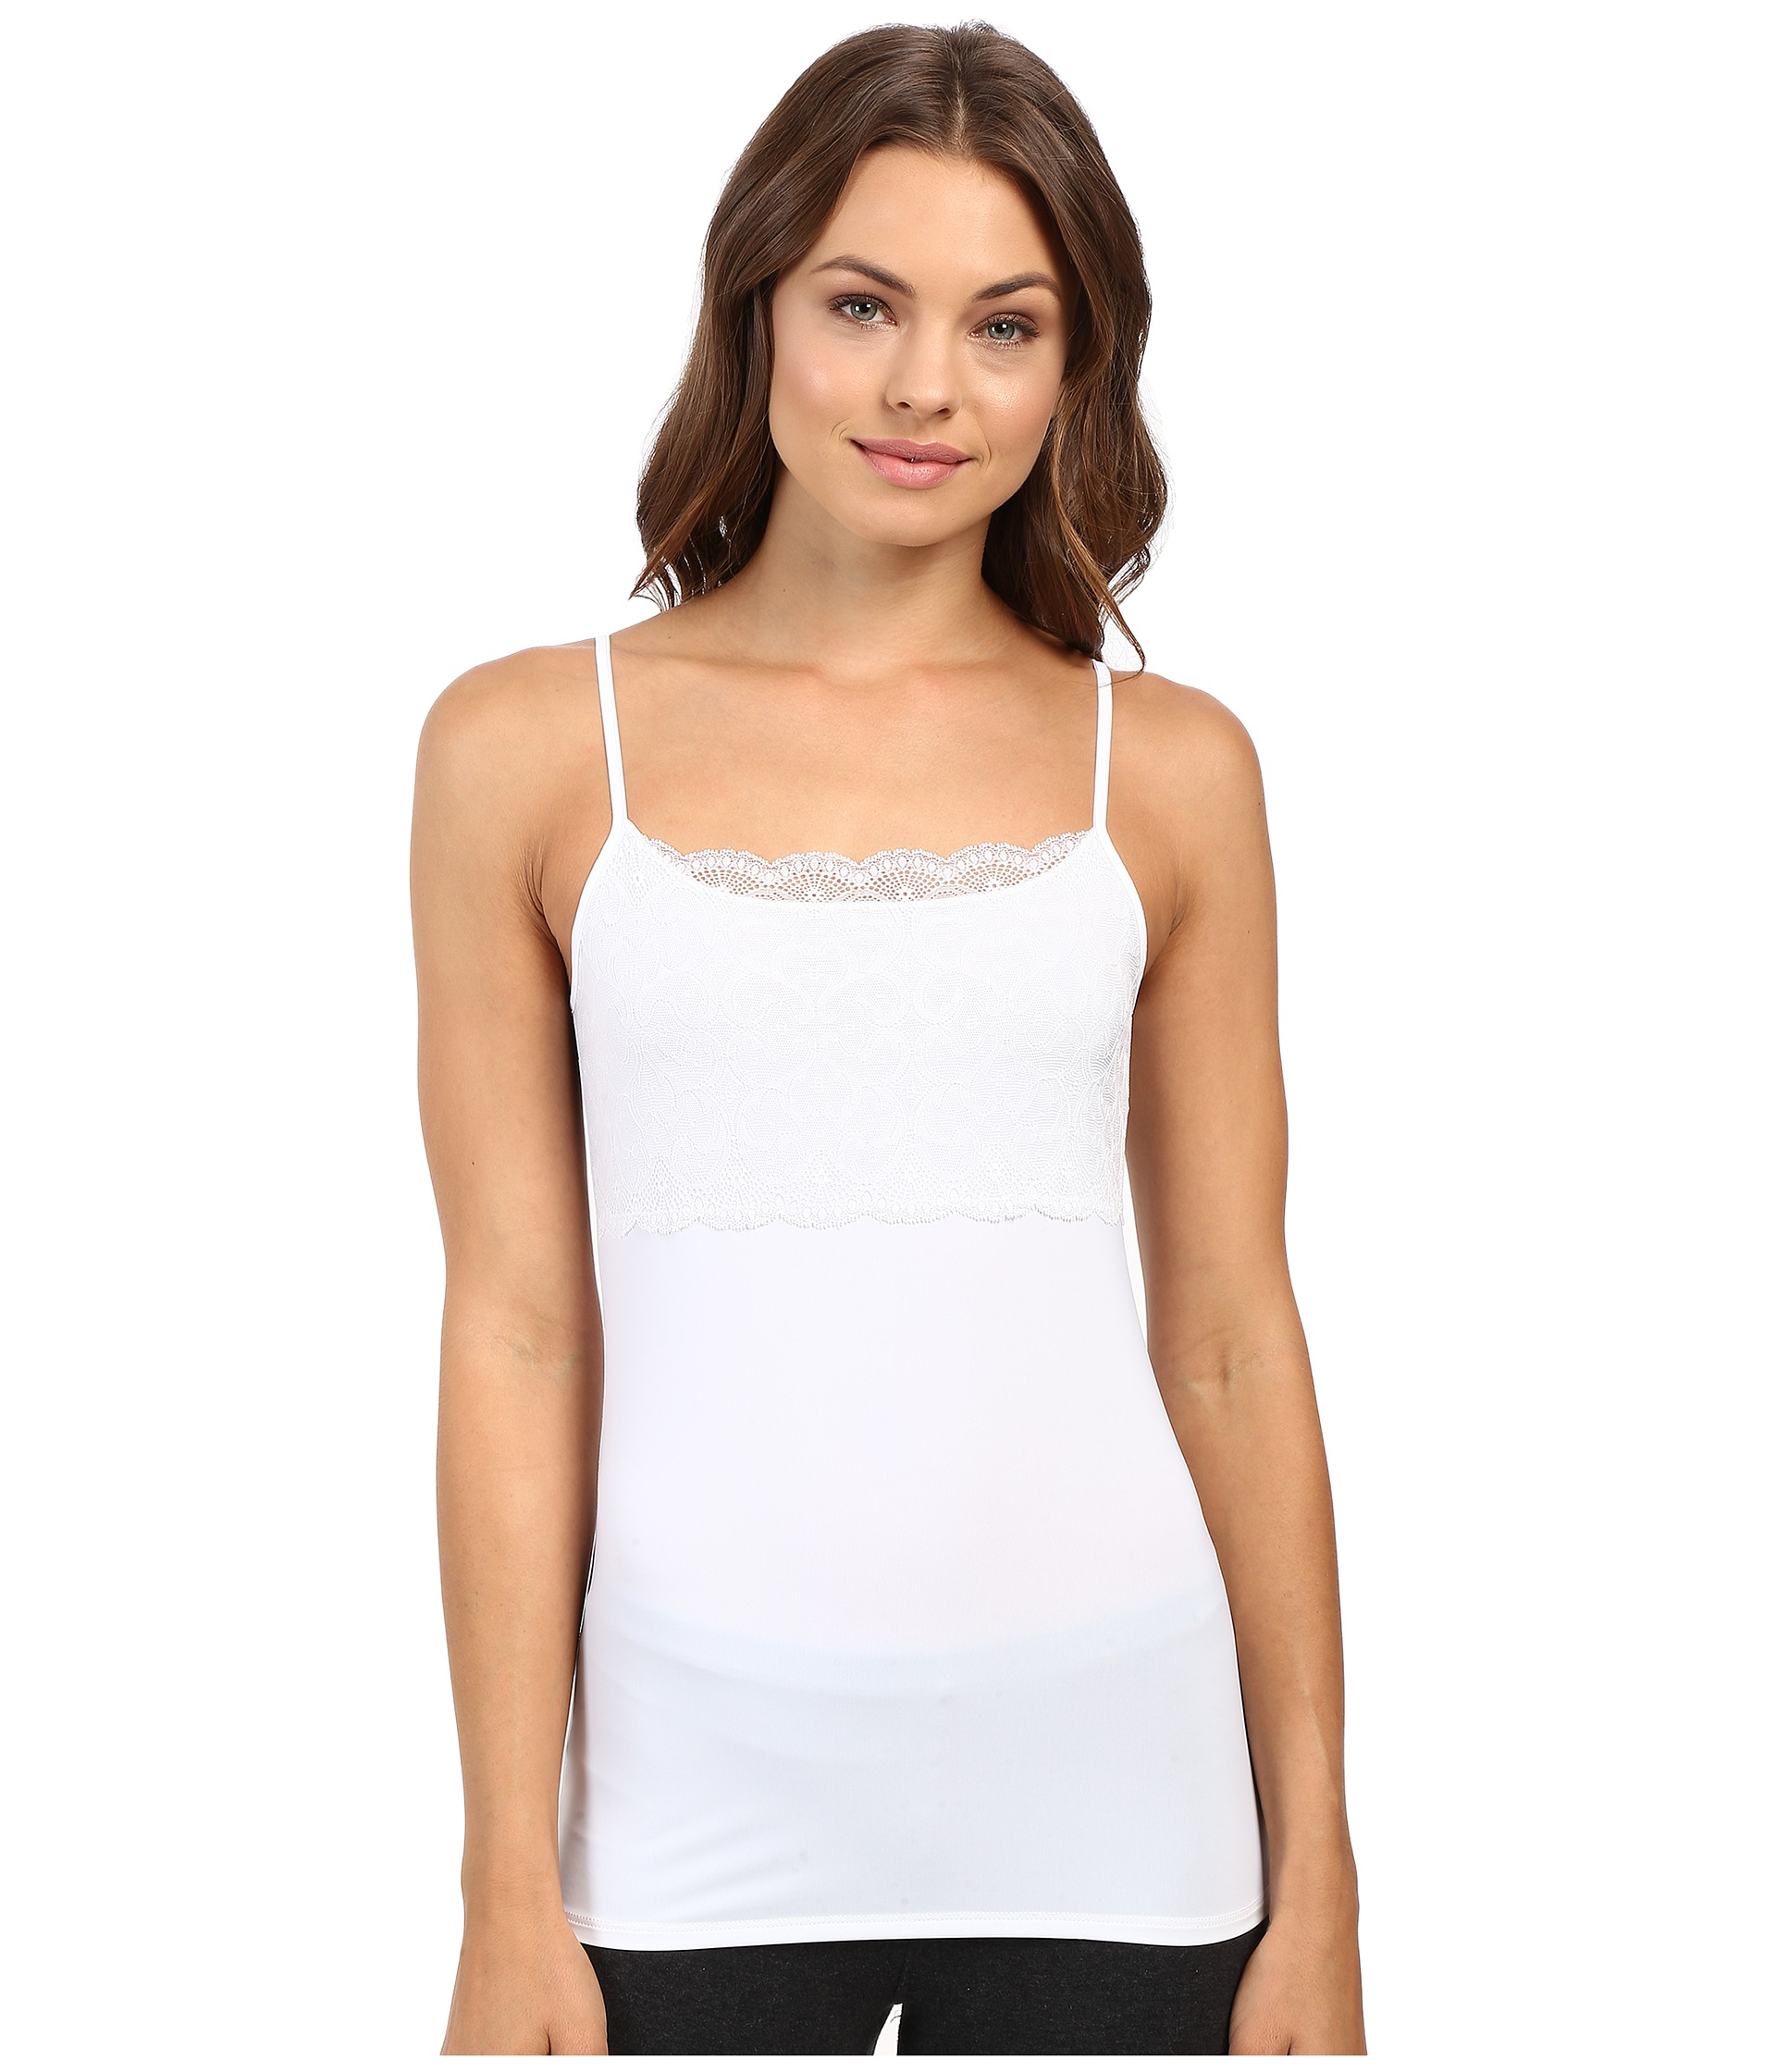 Under Shirts For Women